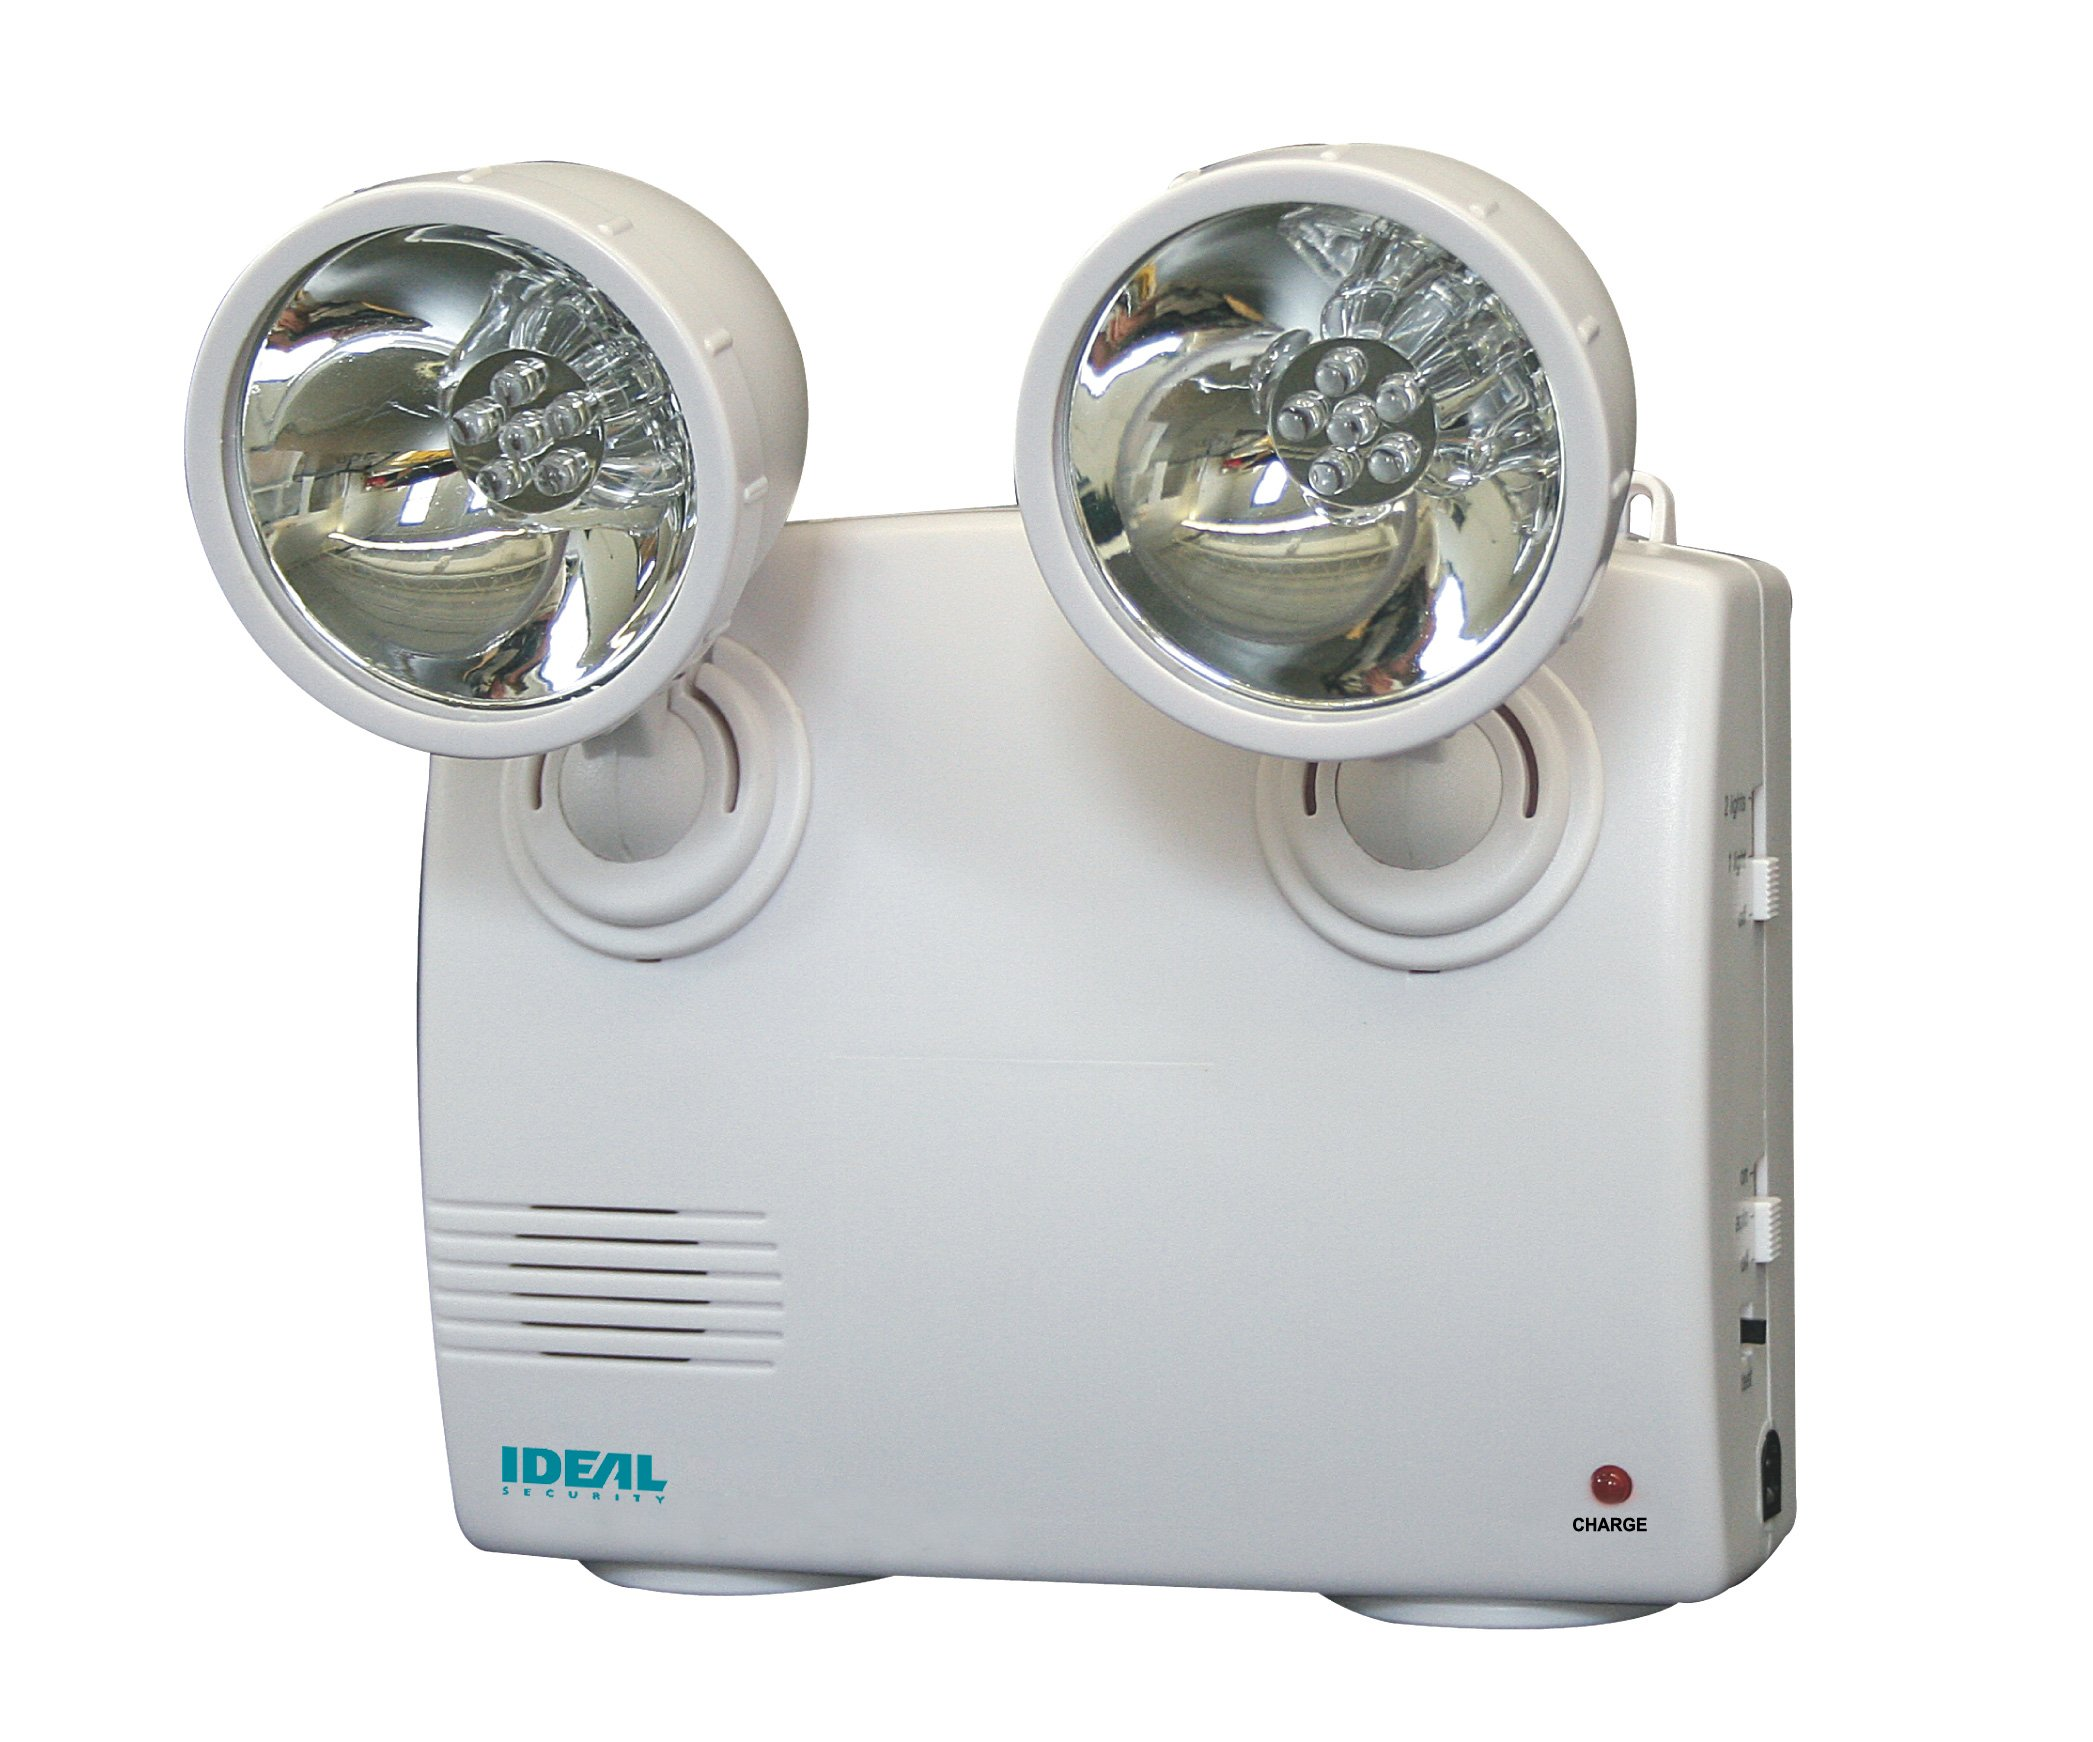 Ideal Security SK636 Lights-out Emergency Power Failure Light with 2 Adjustable Heads 60 Lumens LED, Up to 48 Hours